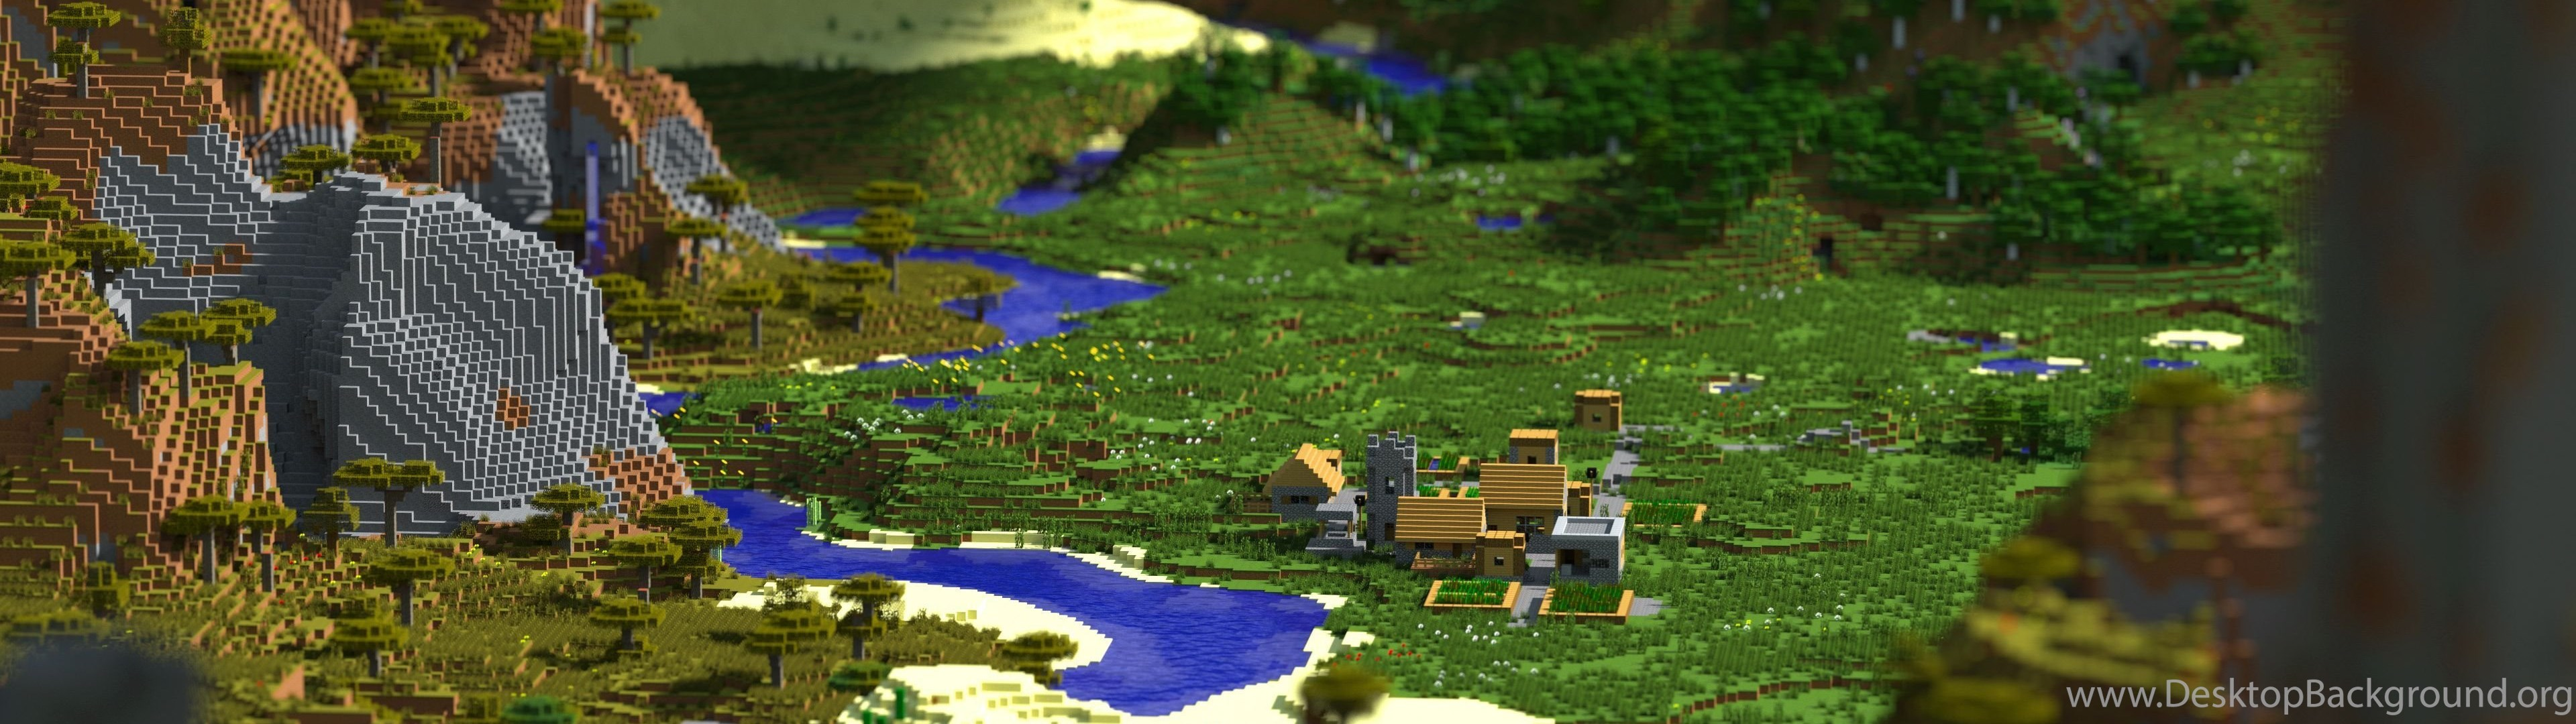 Best Wallpaper Minecraft Colorful - 240173_minecraft-wallpapers-748-hd-wallpapers_3840x2160_h  Snapshot_589319.jpg